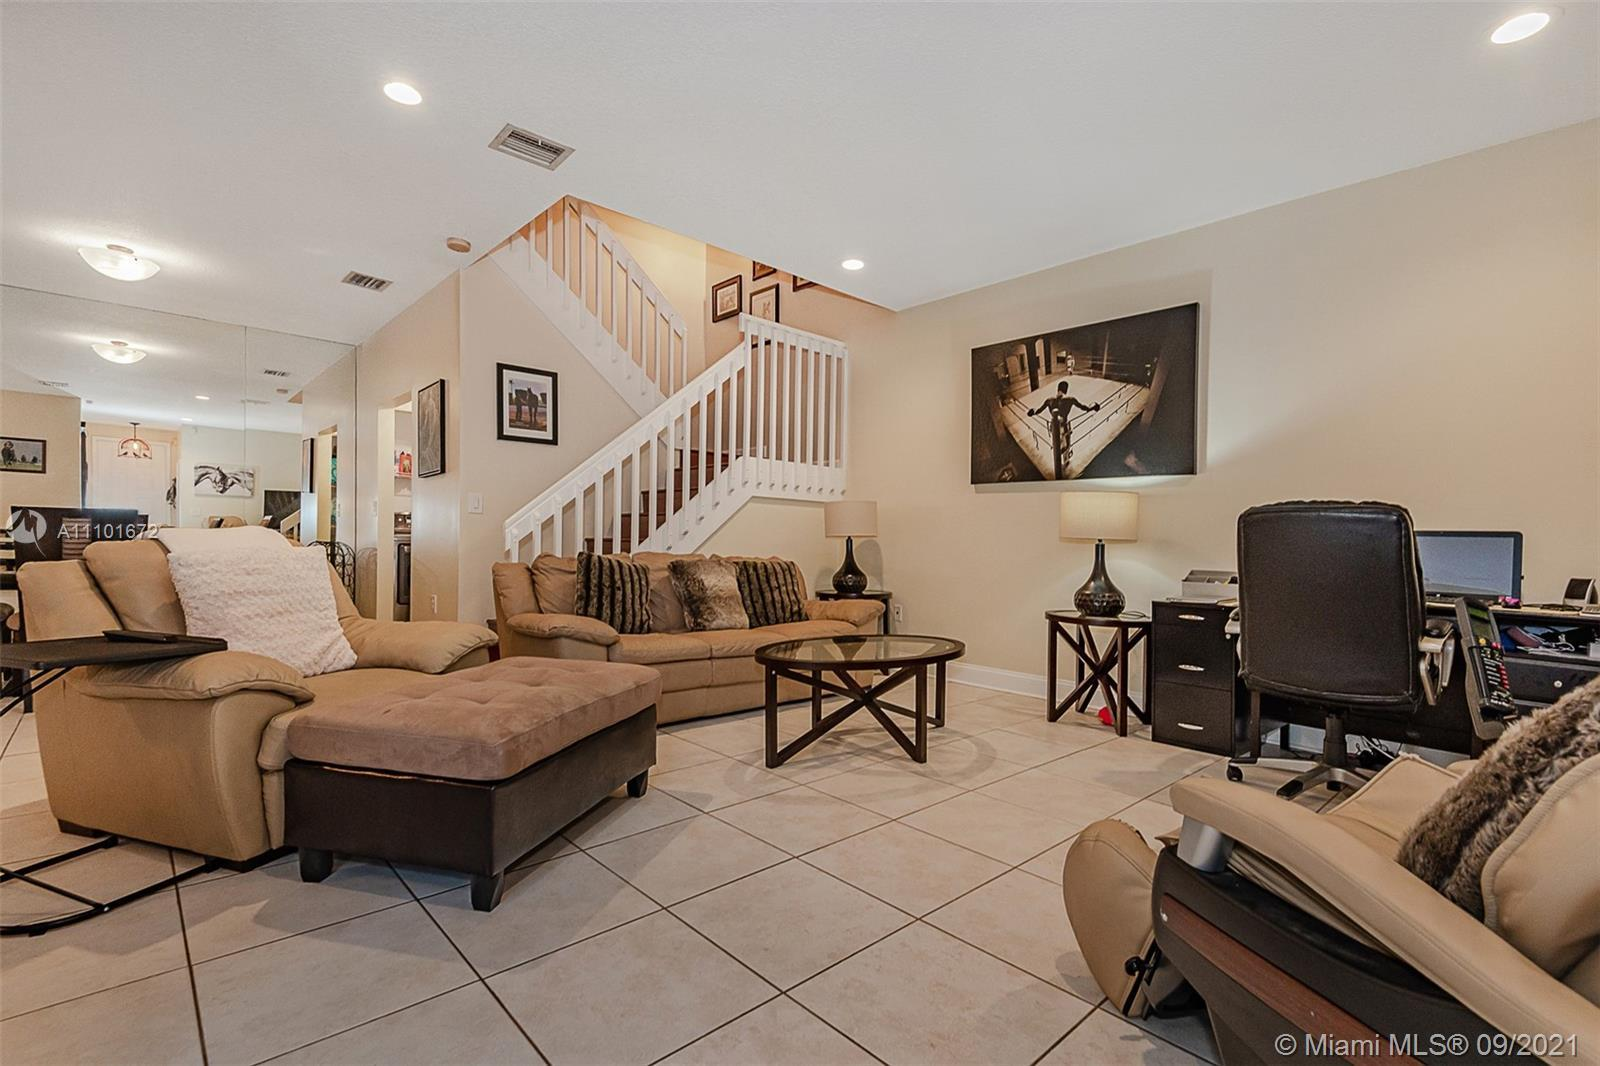 Largest style townhome available. This home has been made into 2 bedrooms with attached office area,